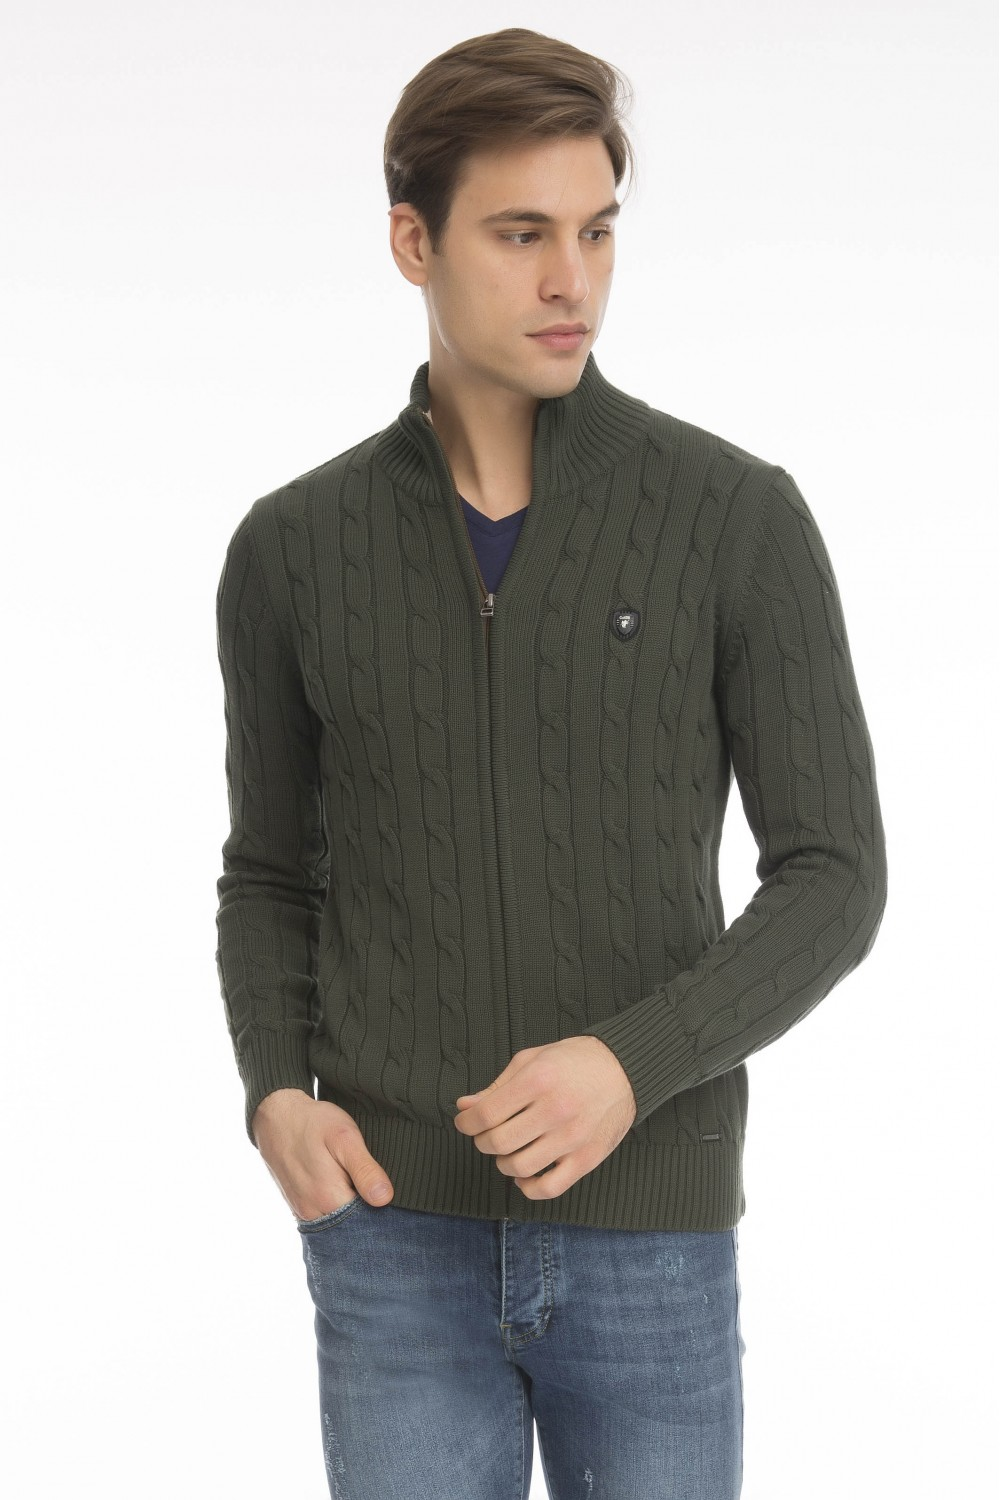 Men's Cardigan Zip Knit Collar Khaki